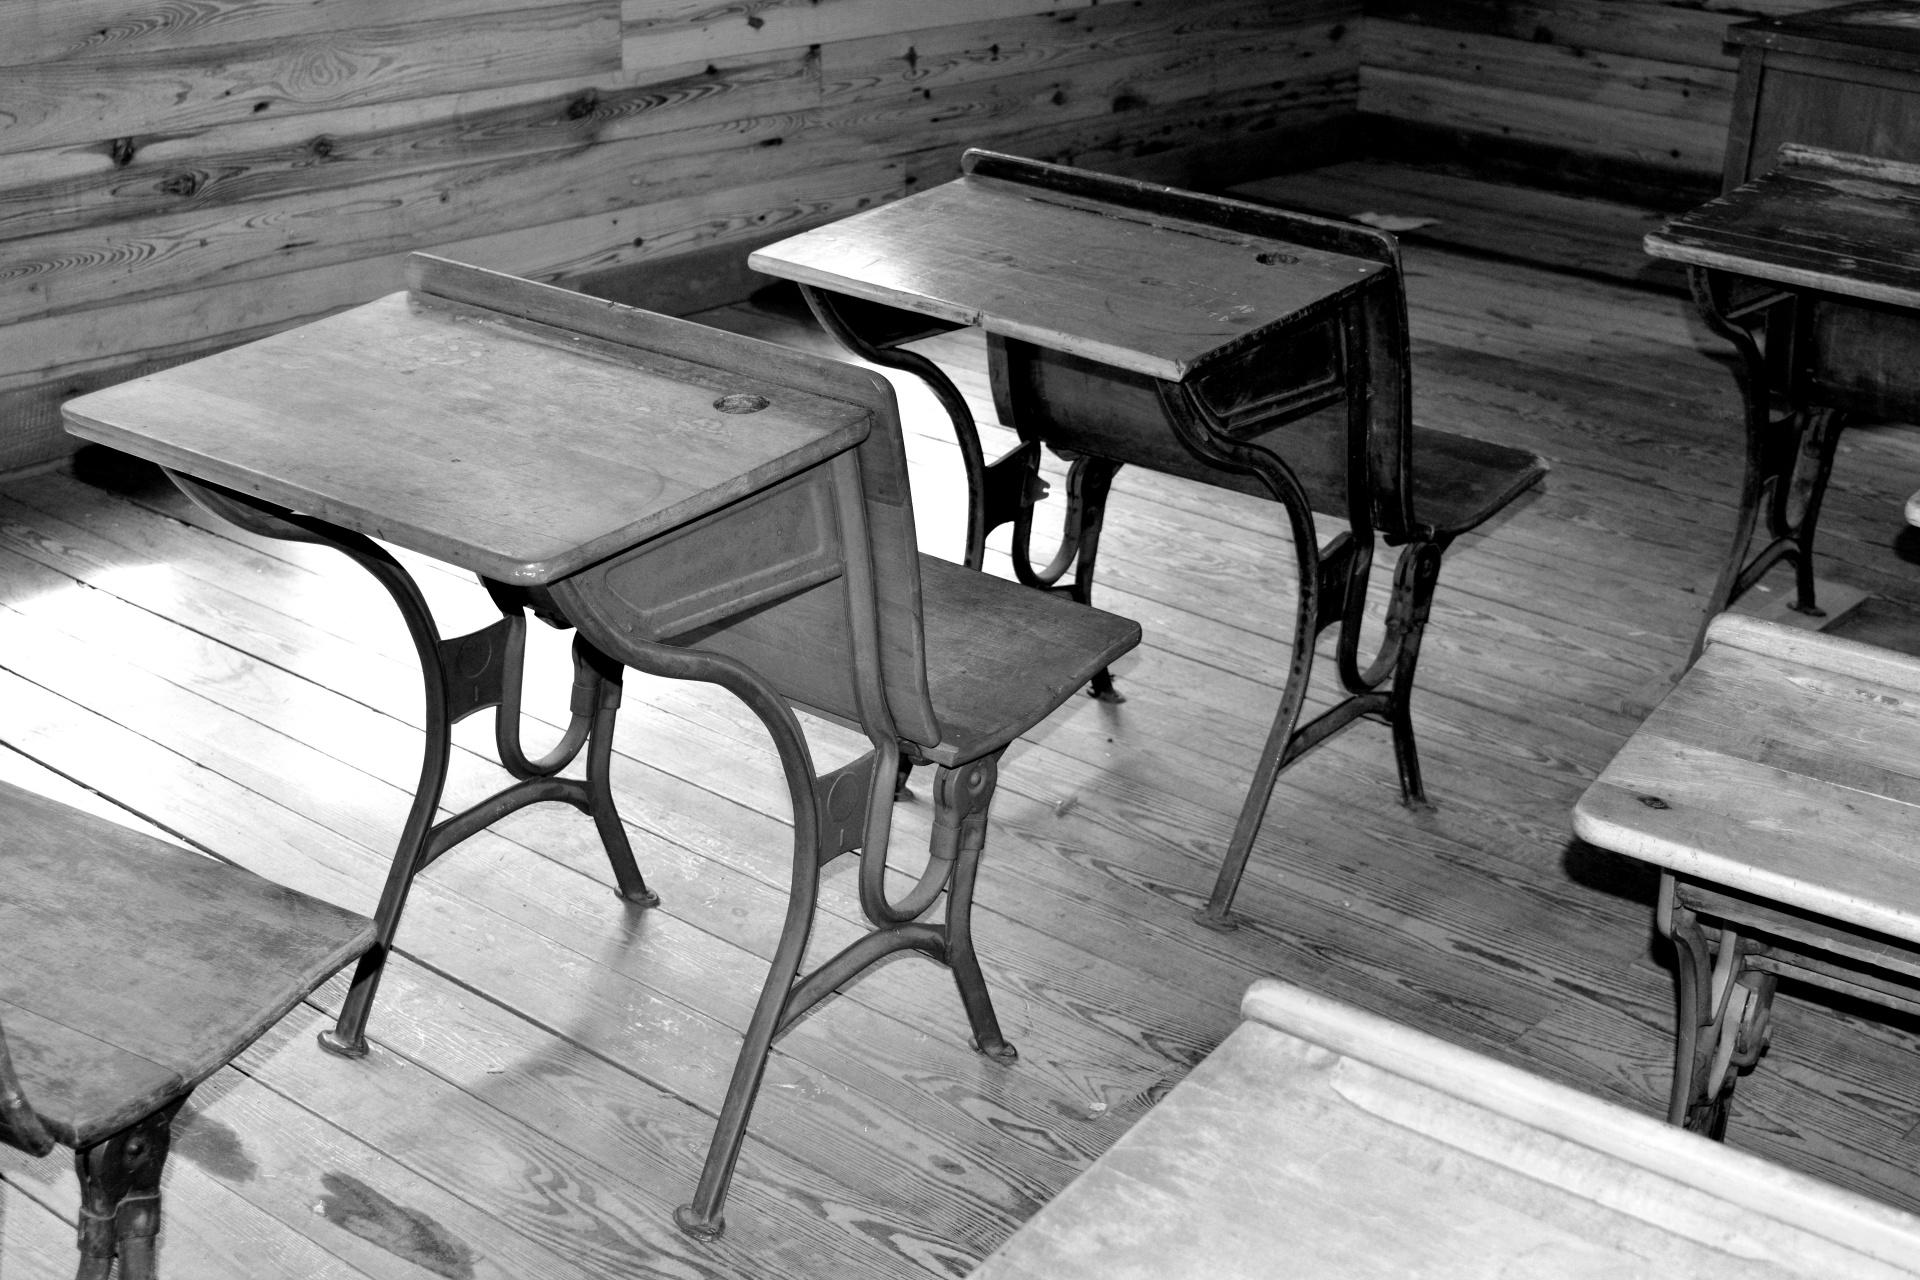 Image of classroom with old desks